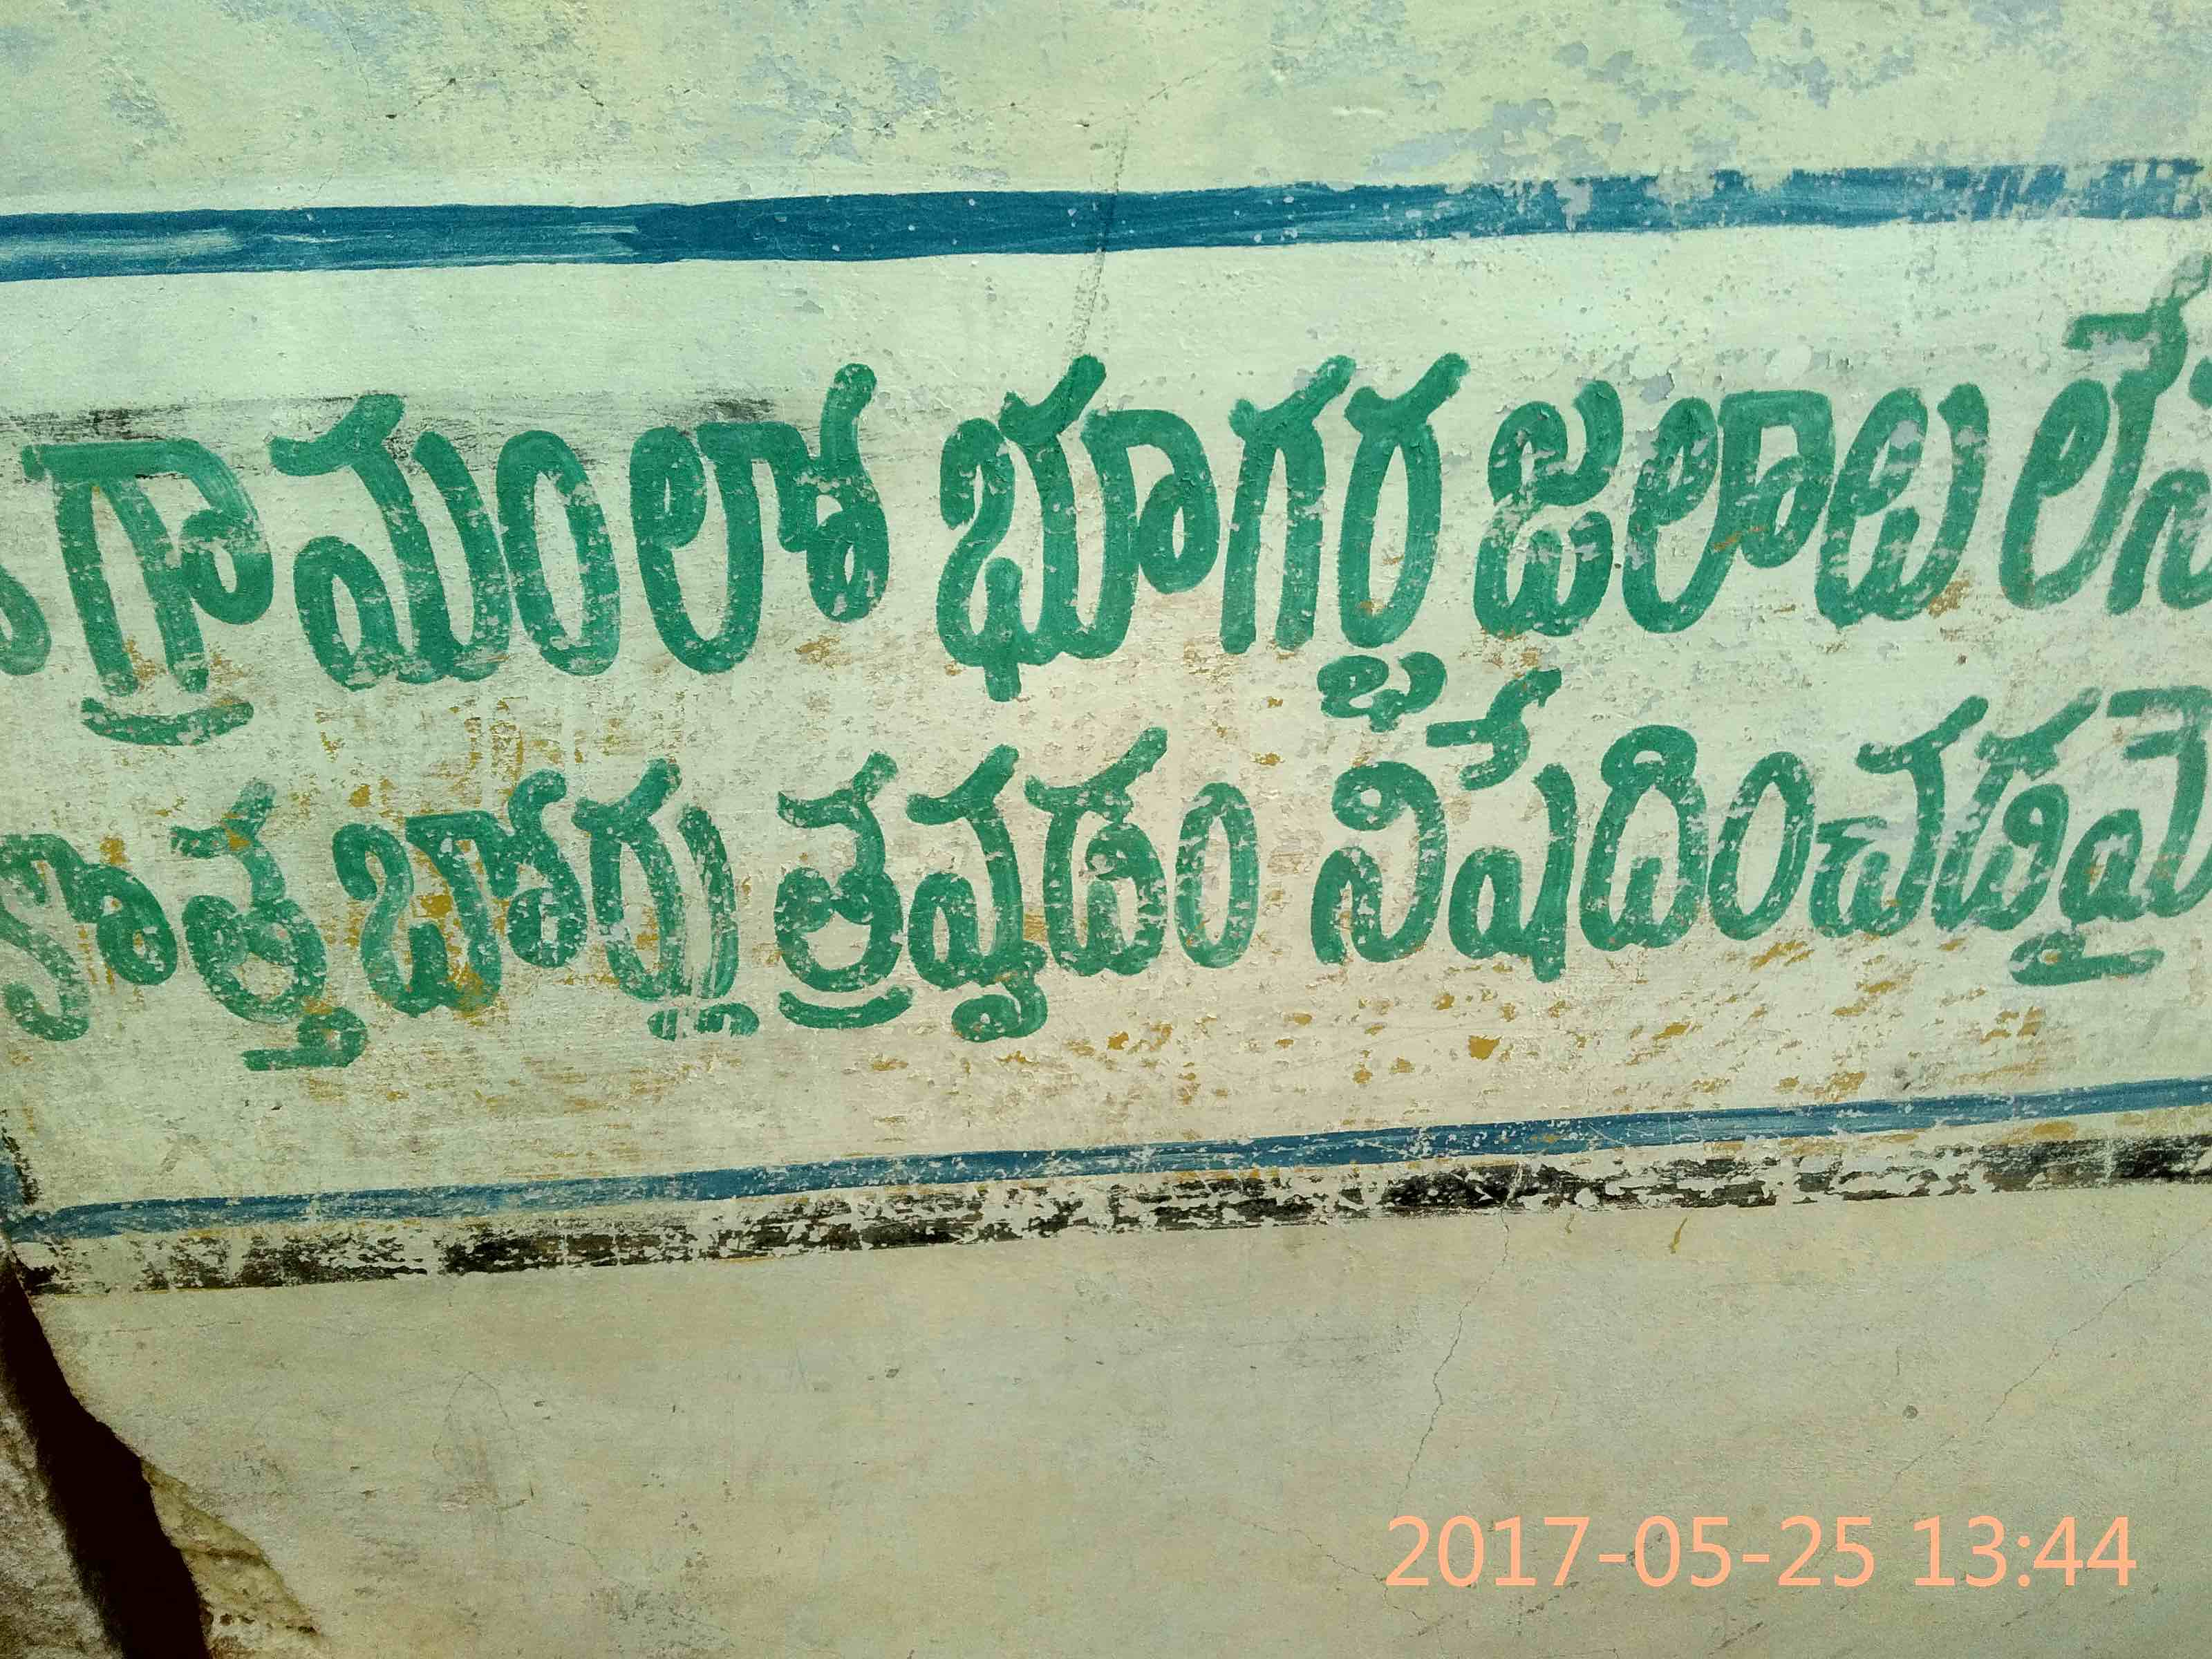 Since the ground water tables have depleted, digging borewells is prohibited. A sign announcing that in Gopepalle village, Nallamada mandal, Anantapur district, May 2017. Credit: Rahul Maganti